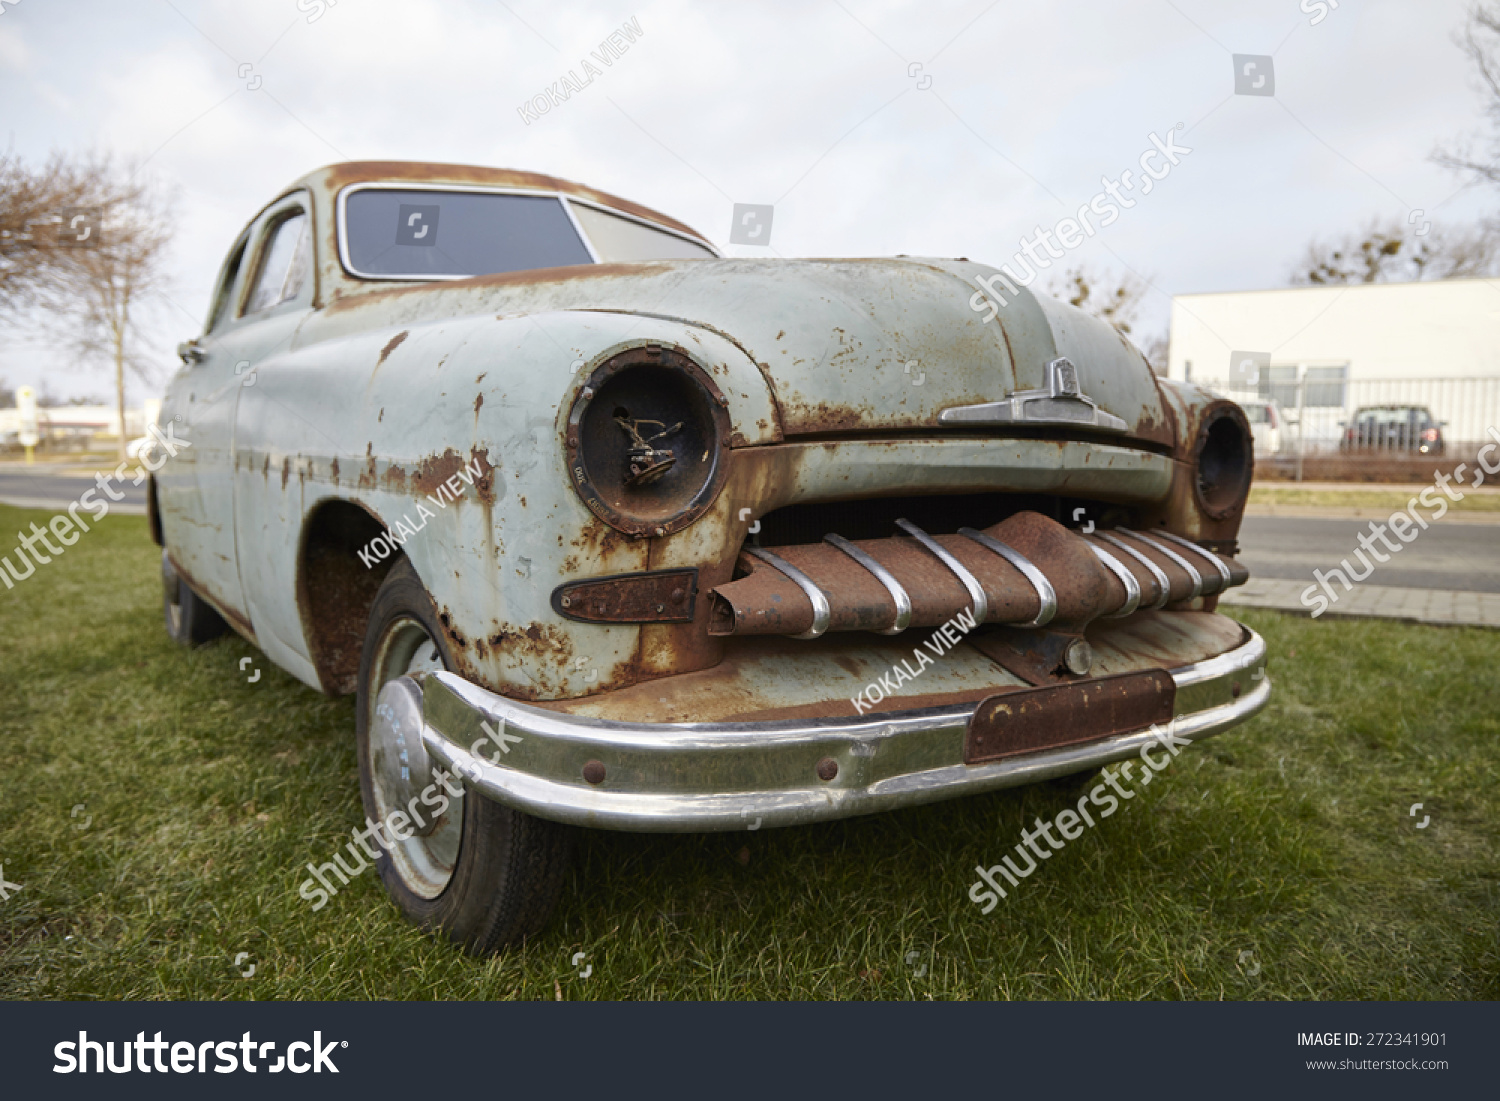 Old Rusty Car Stock Photo & Image (Royalty-Free) 272341901 ...